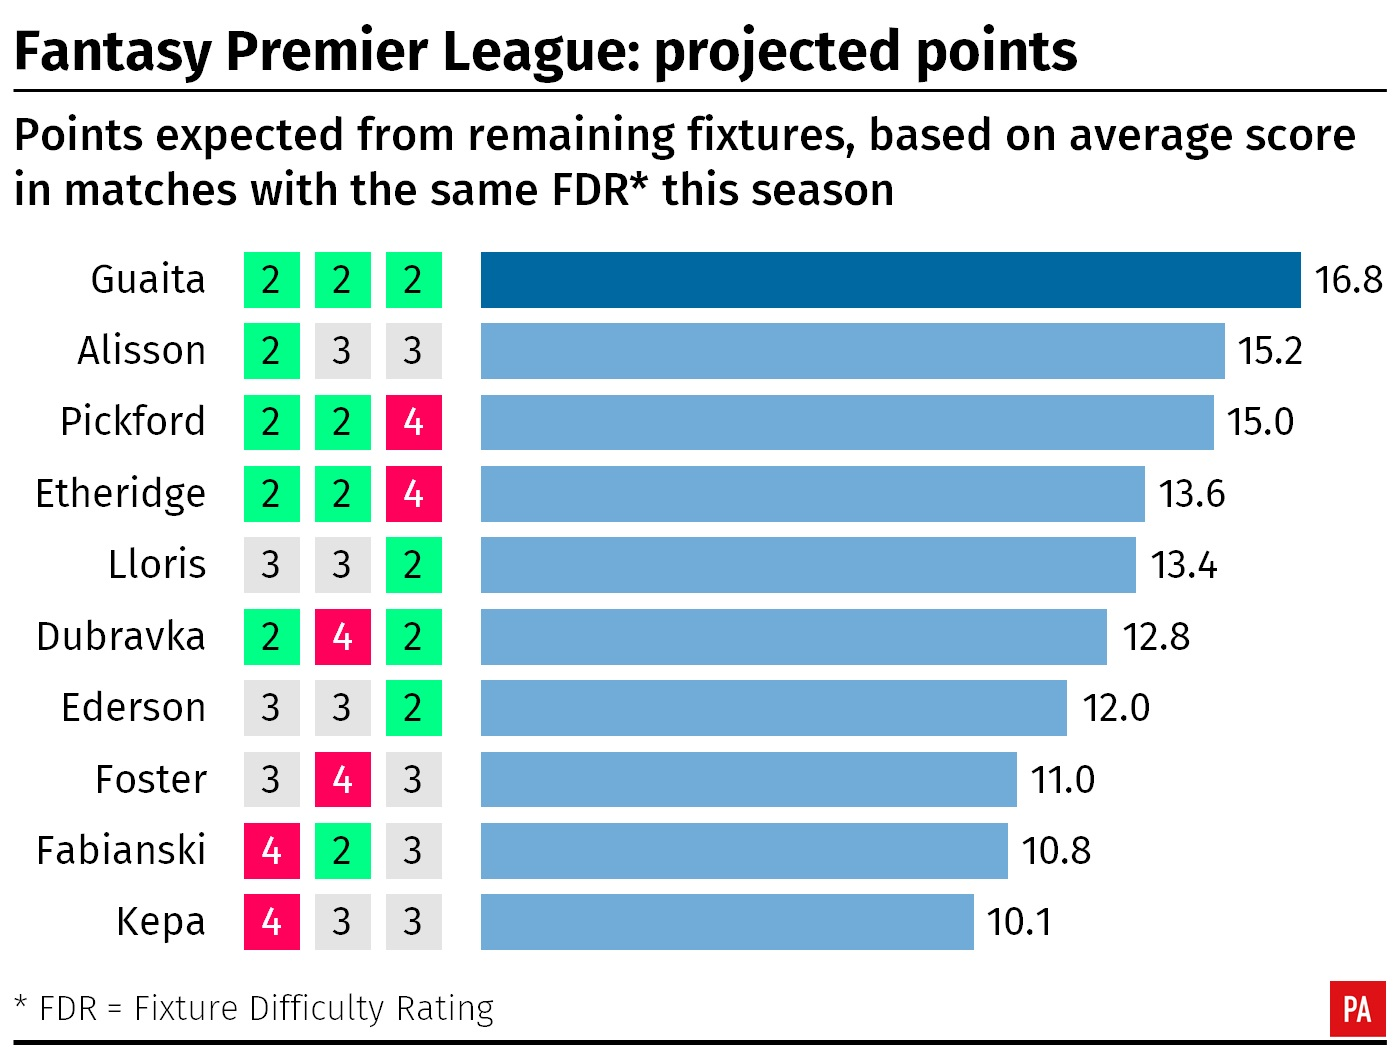 A graphic showing the projected Fantasy Premier League points for goalkeepers in the remaining Premier League fixtures